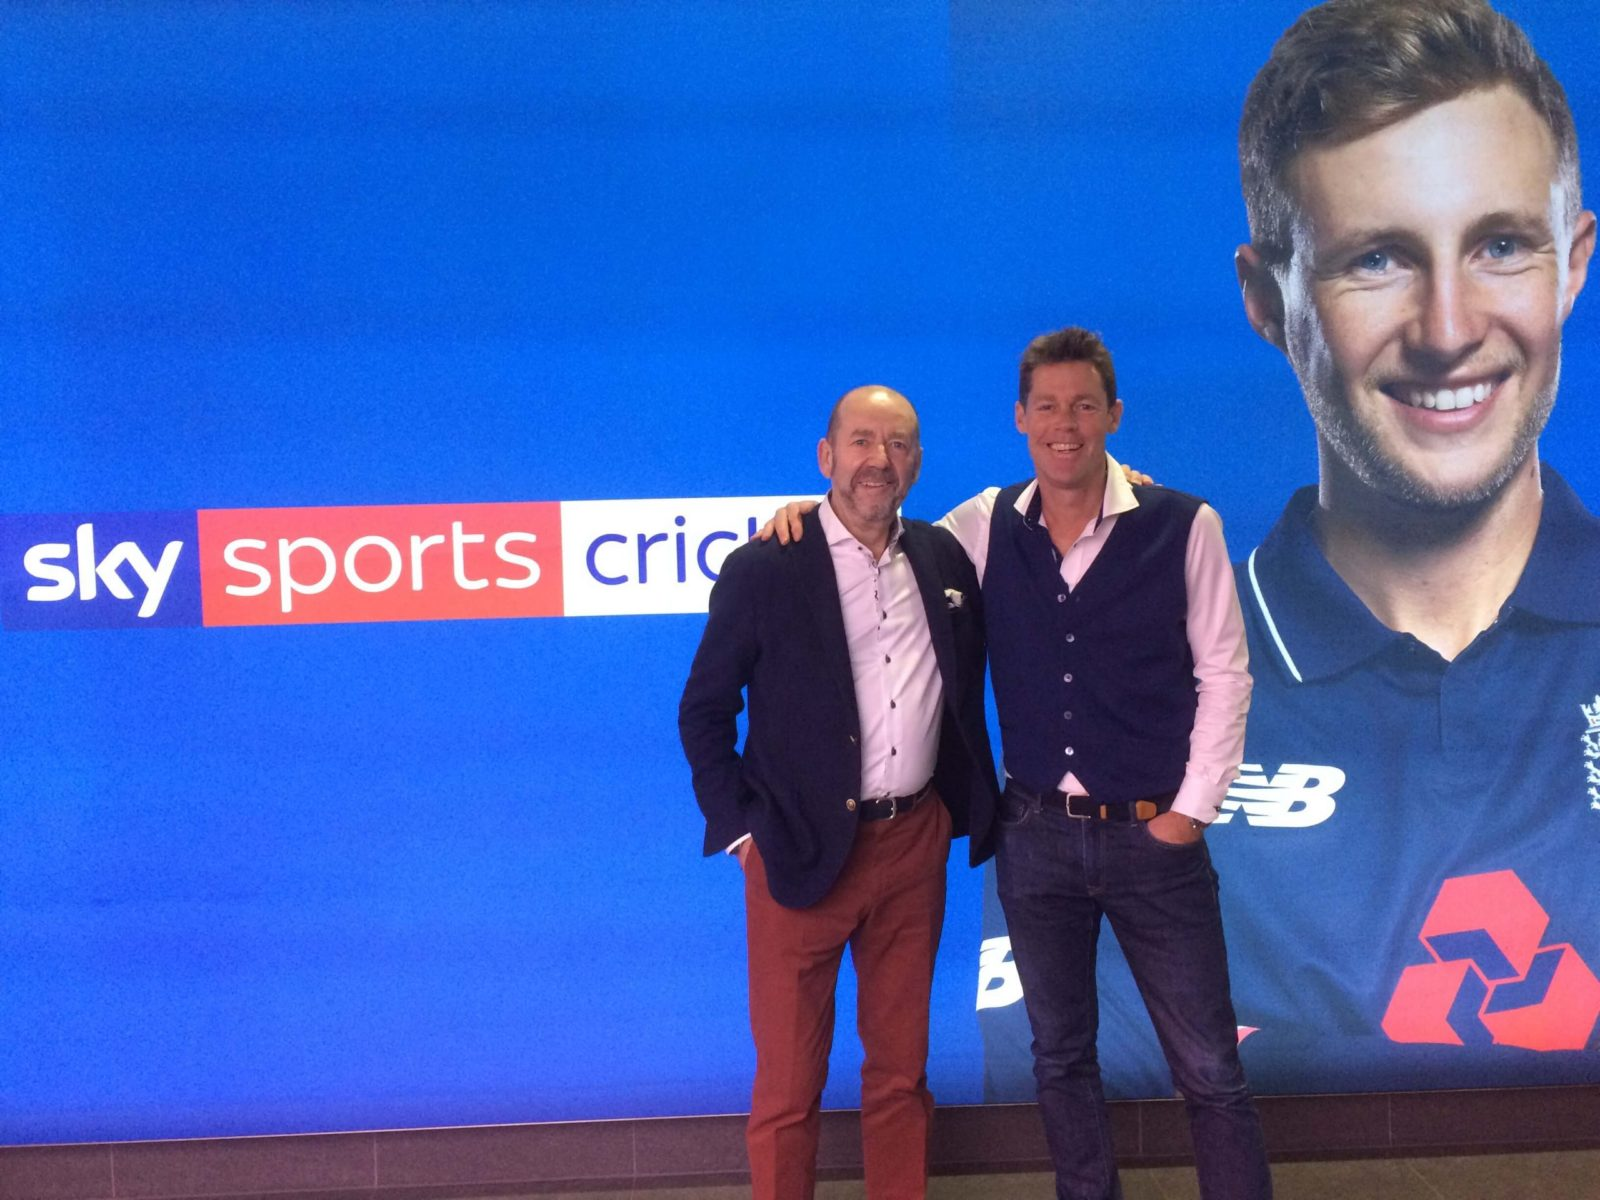 John Deane-Bowers sharing menswear tips with Nick Knight at Sky Sports Cricket HQ